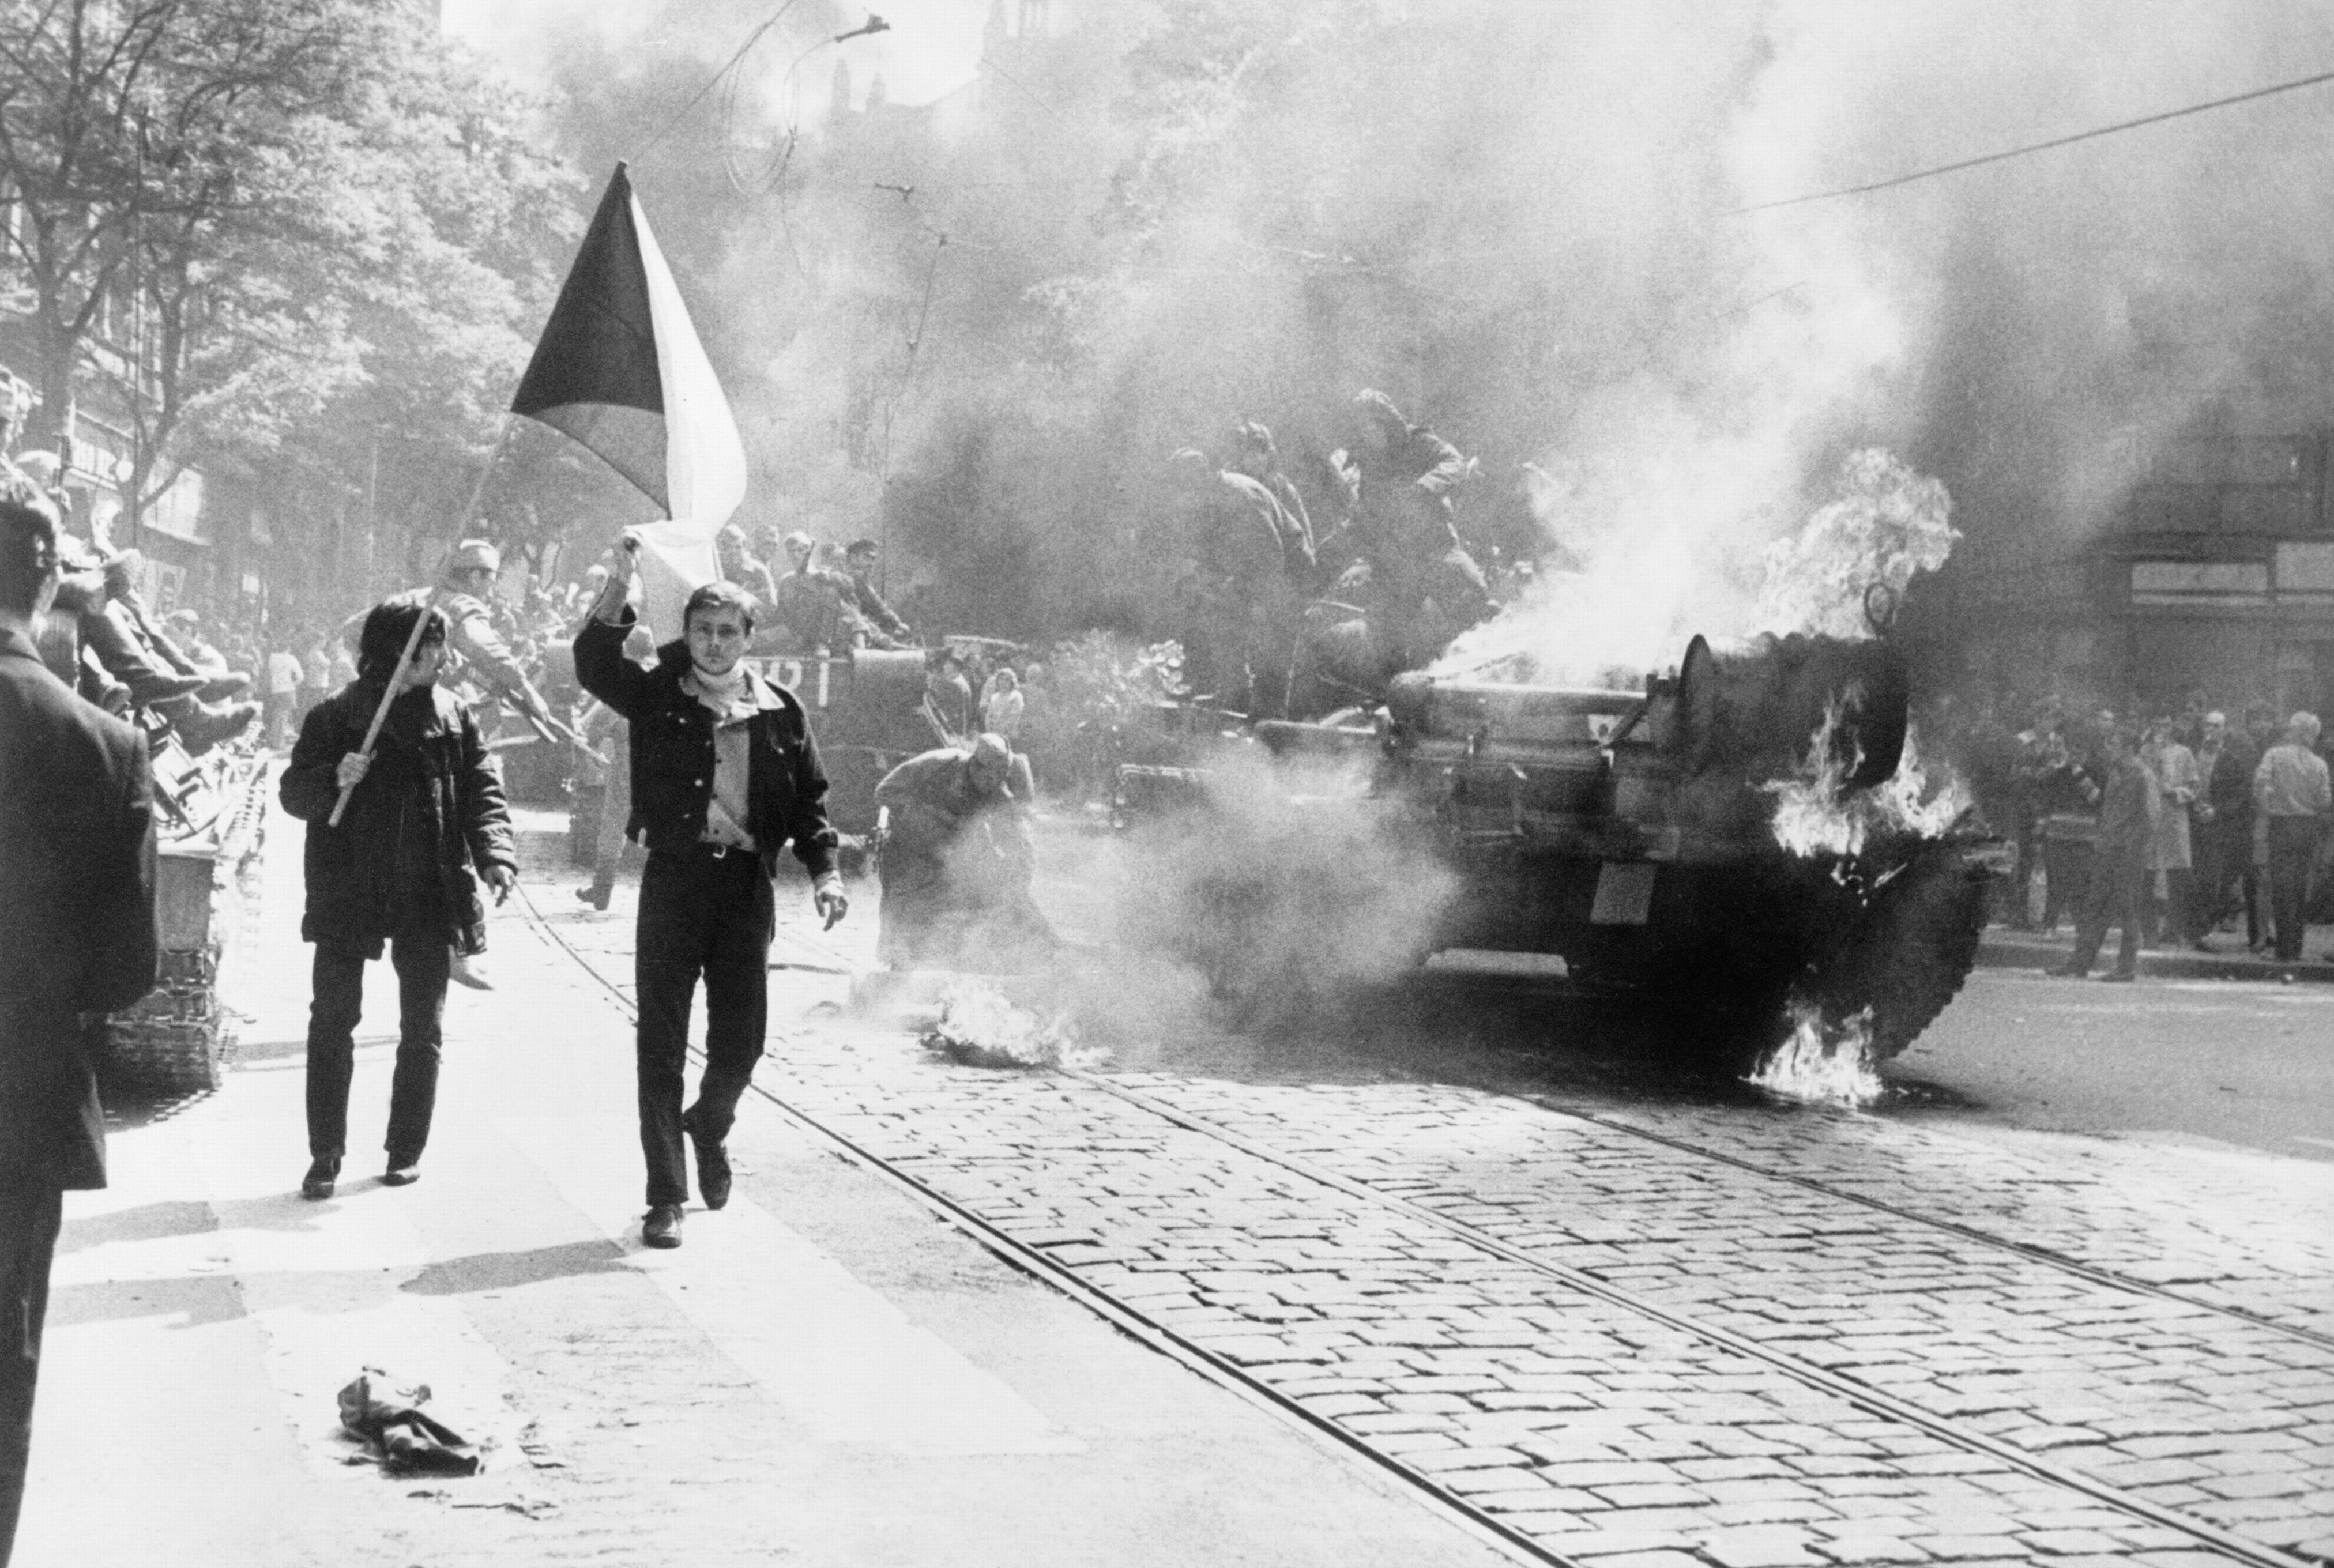 """""""Live"""" coverage of the 1968 Invasion of Czechoslovakia"""